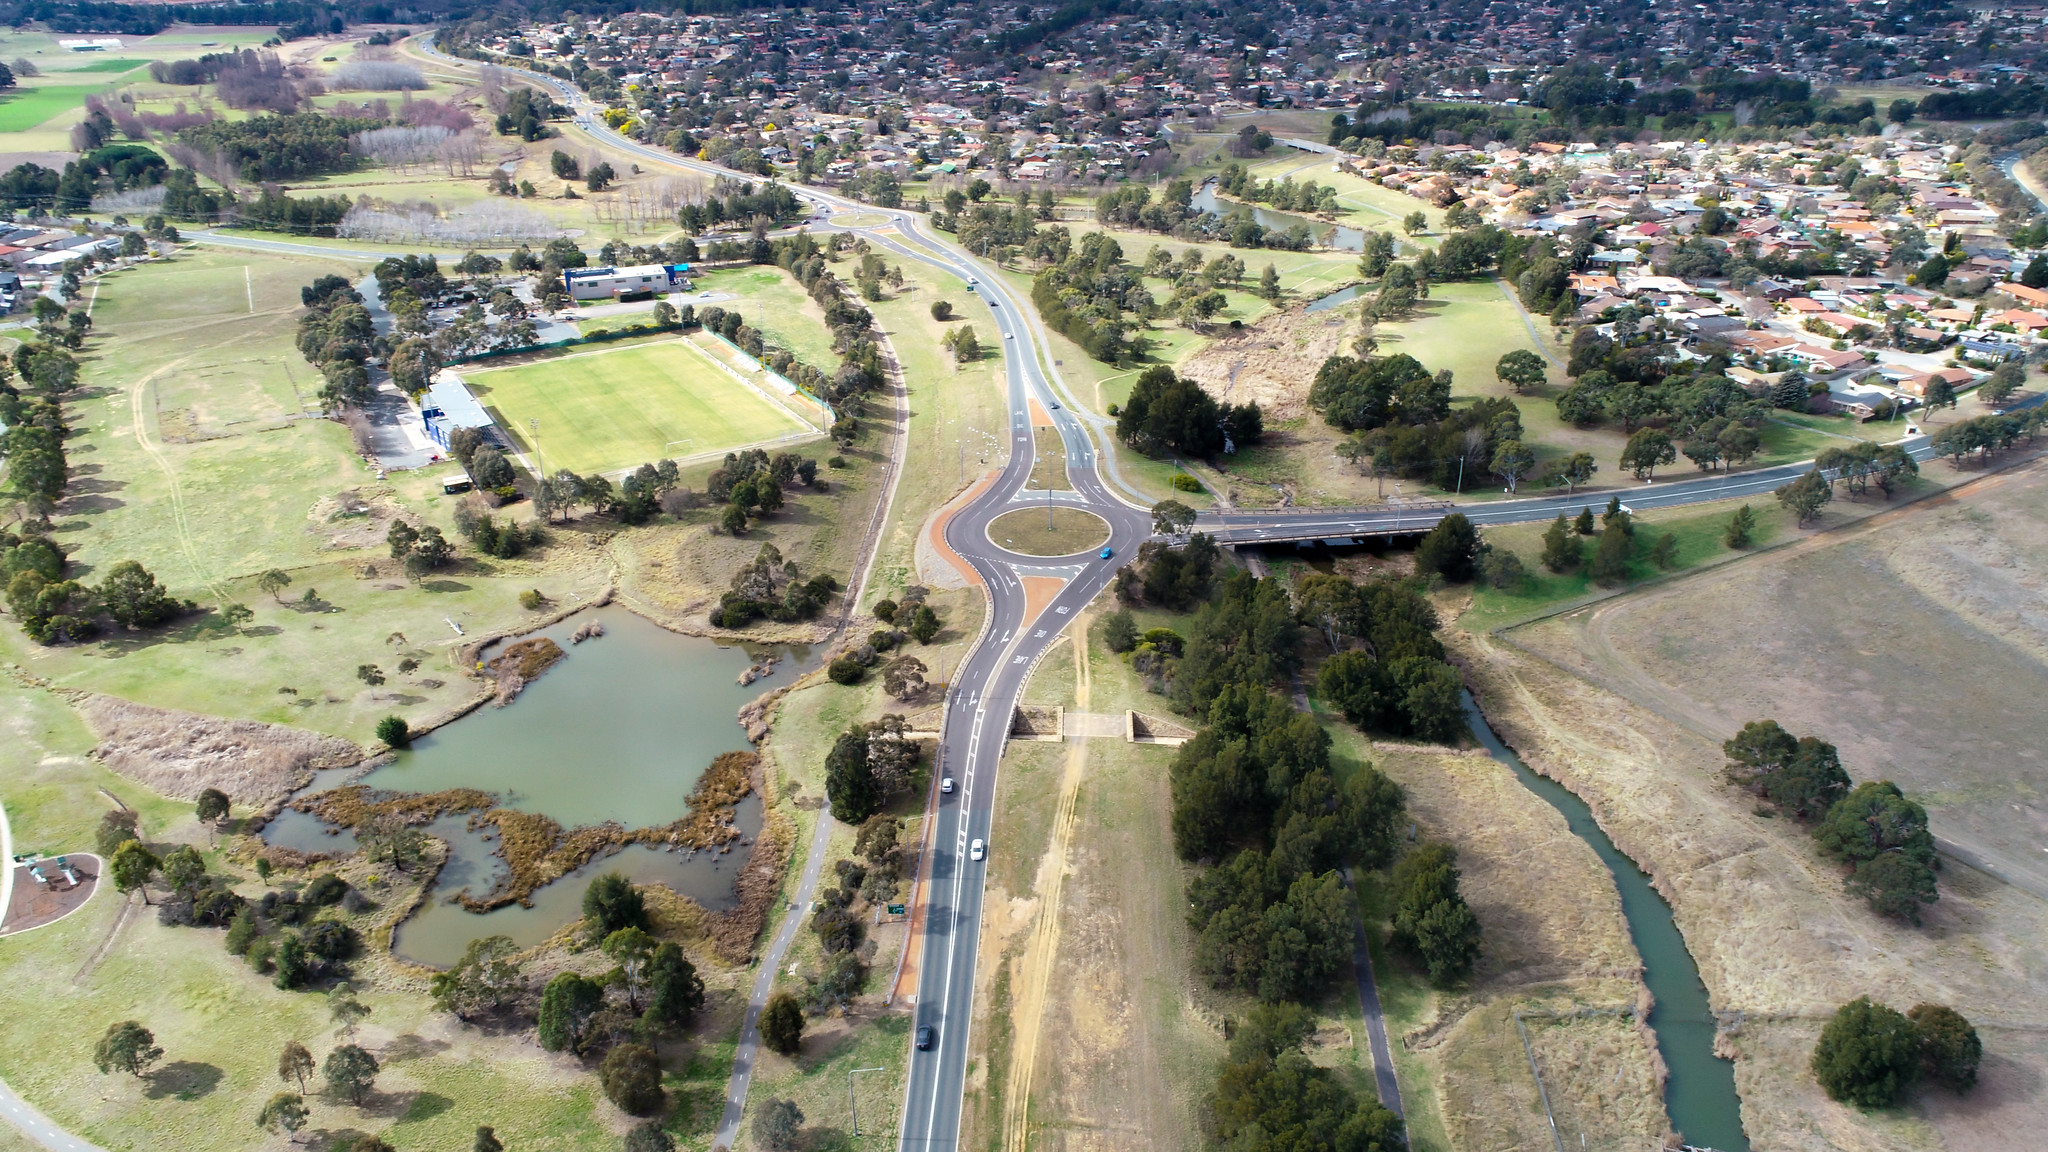 Drone shot of the road connecting Gungahlin and Belconnen